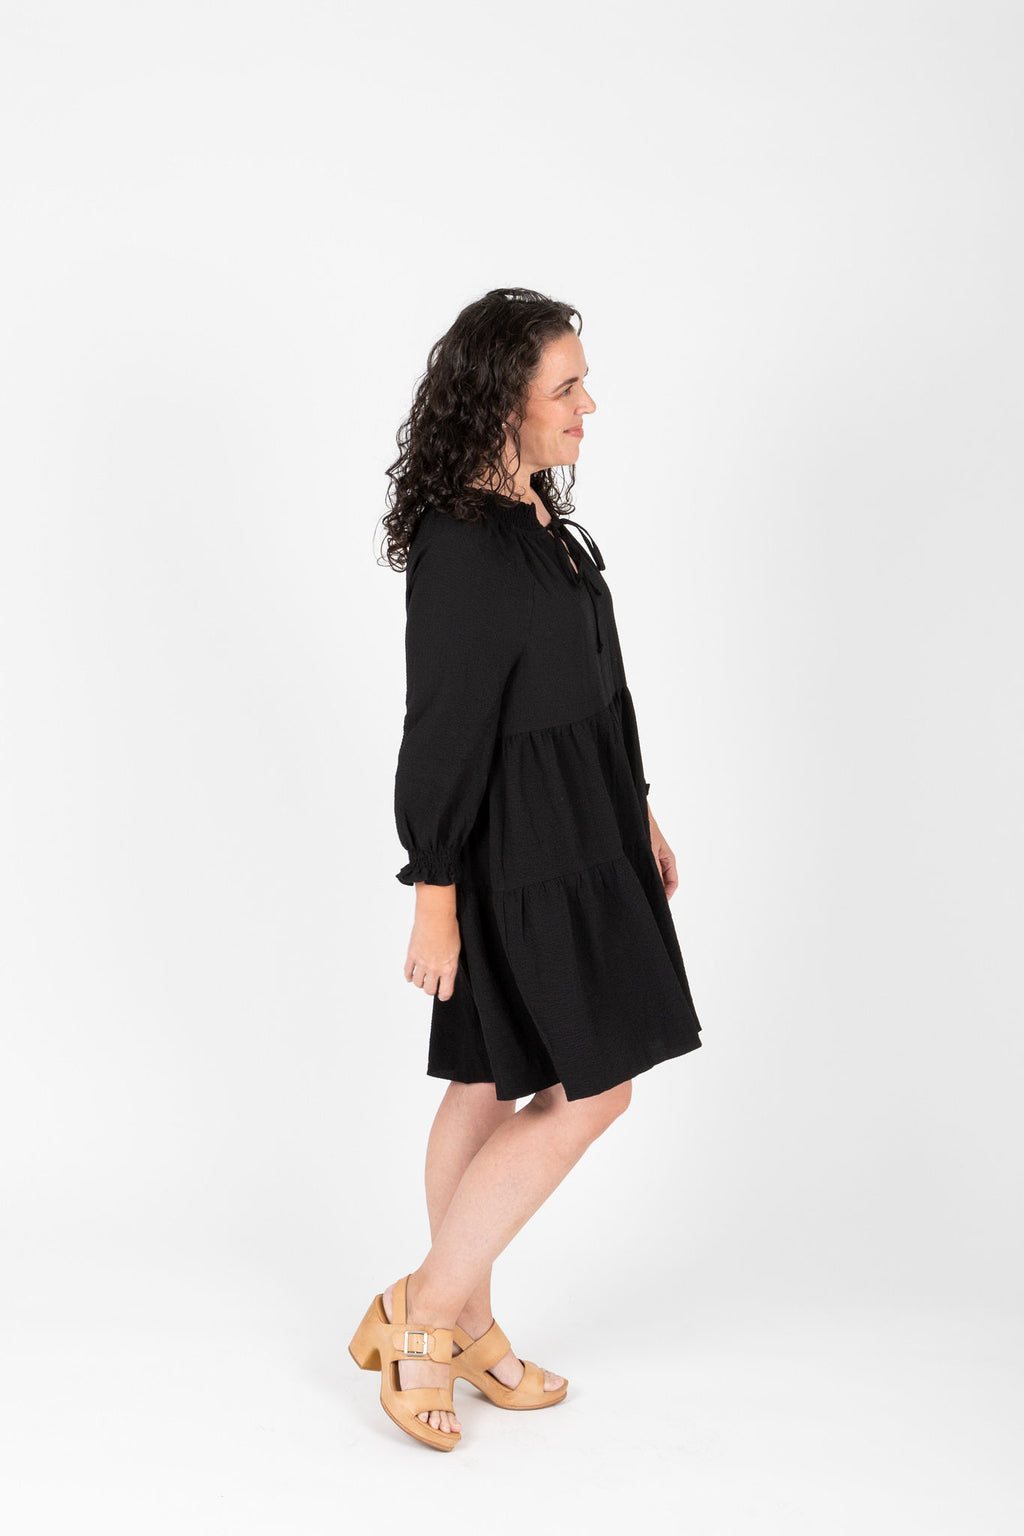 The Walsh Tiered Mini Dress in Black, studio shoot; side view